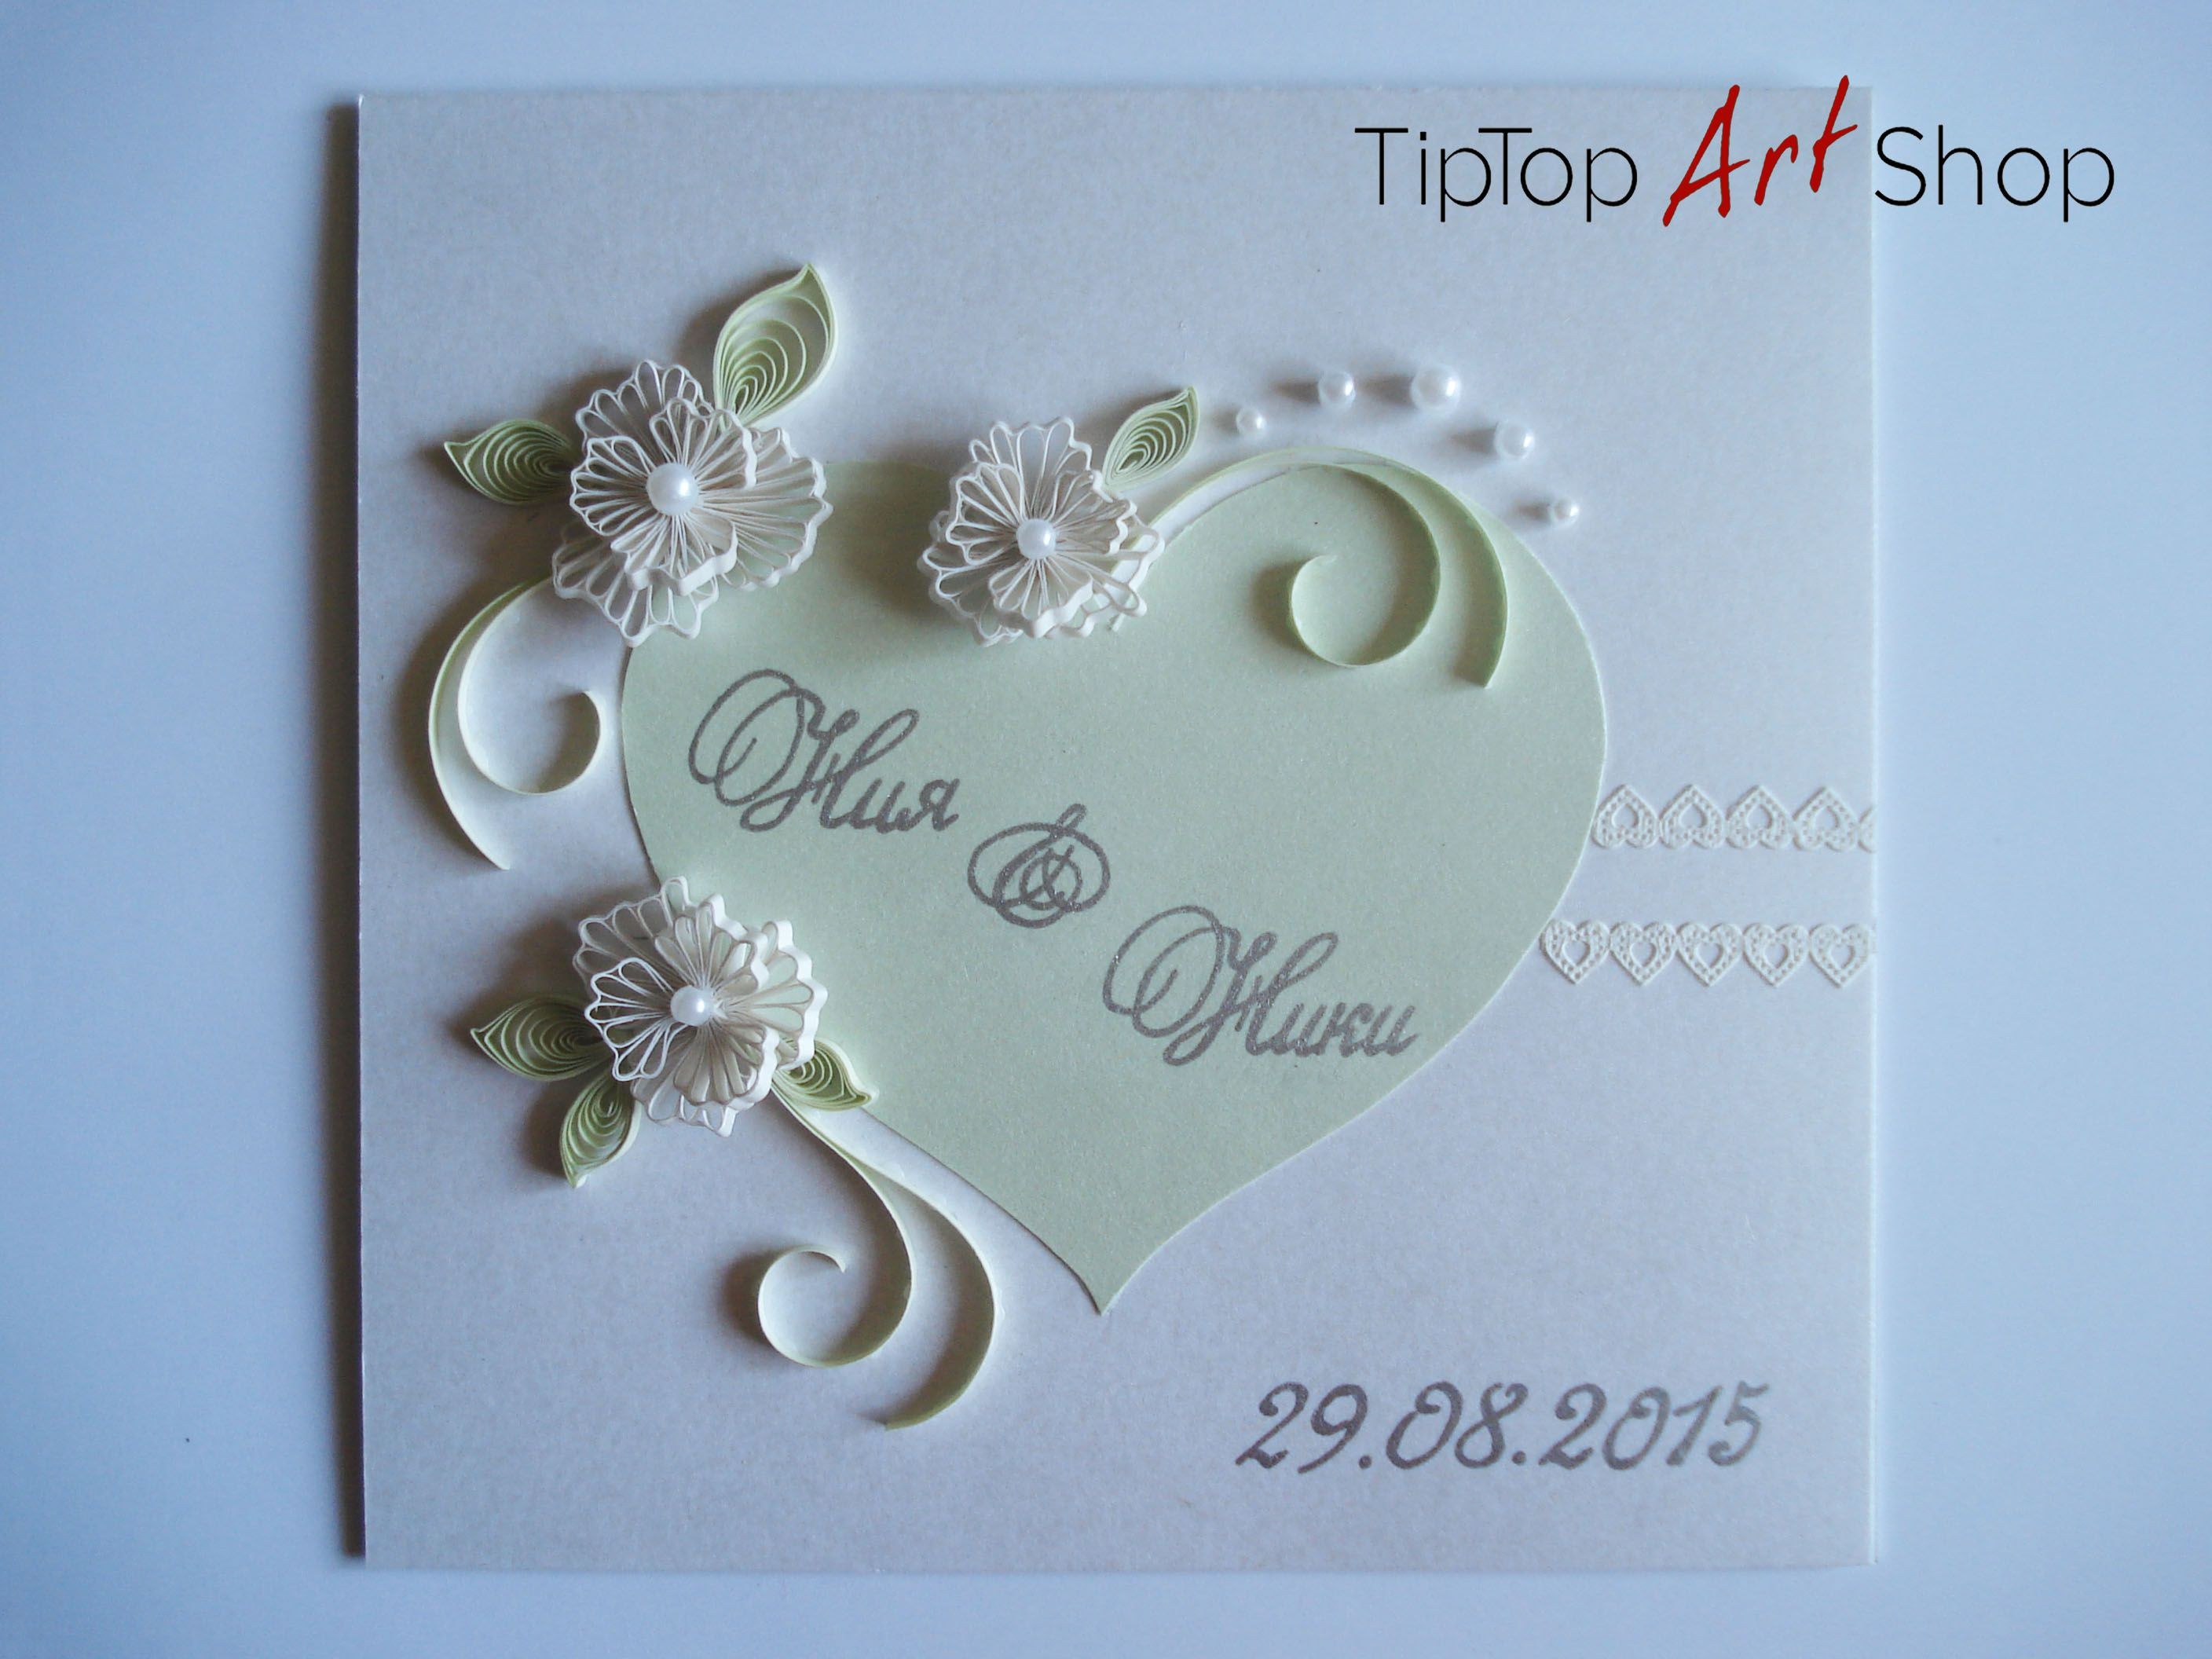 Quilling Wedding Card With Handmade Paper Flowers In Pale Green And